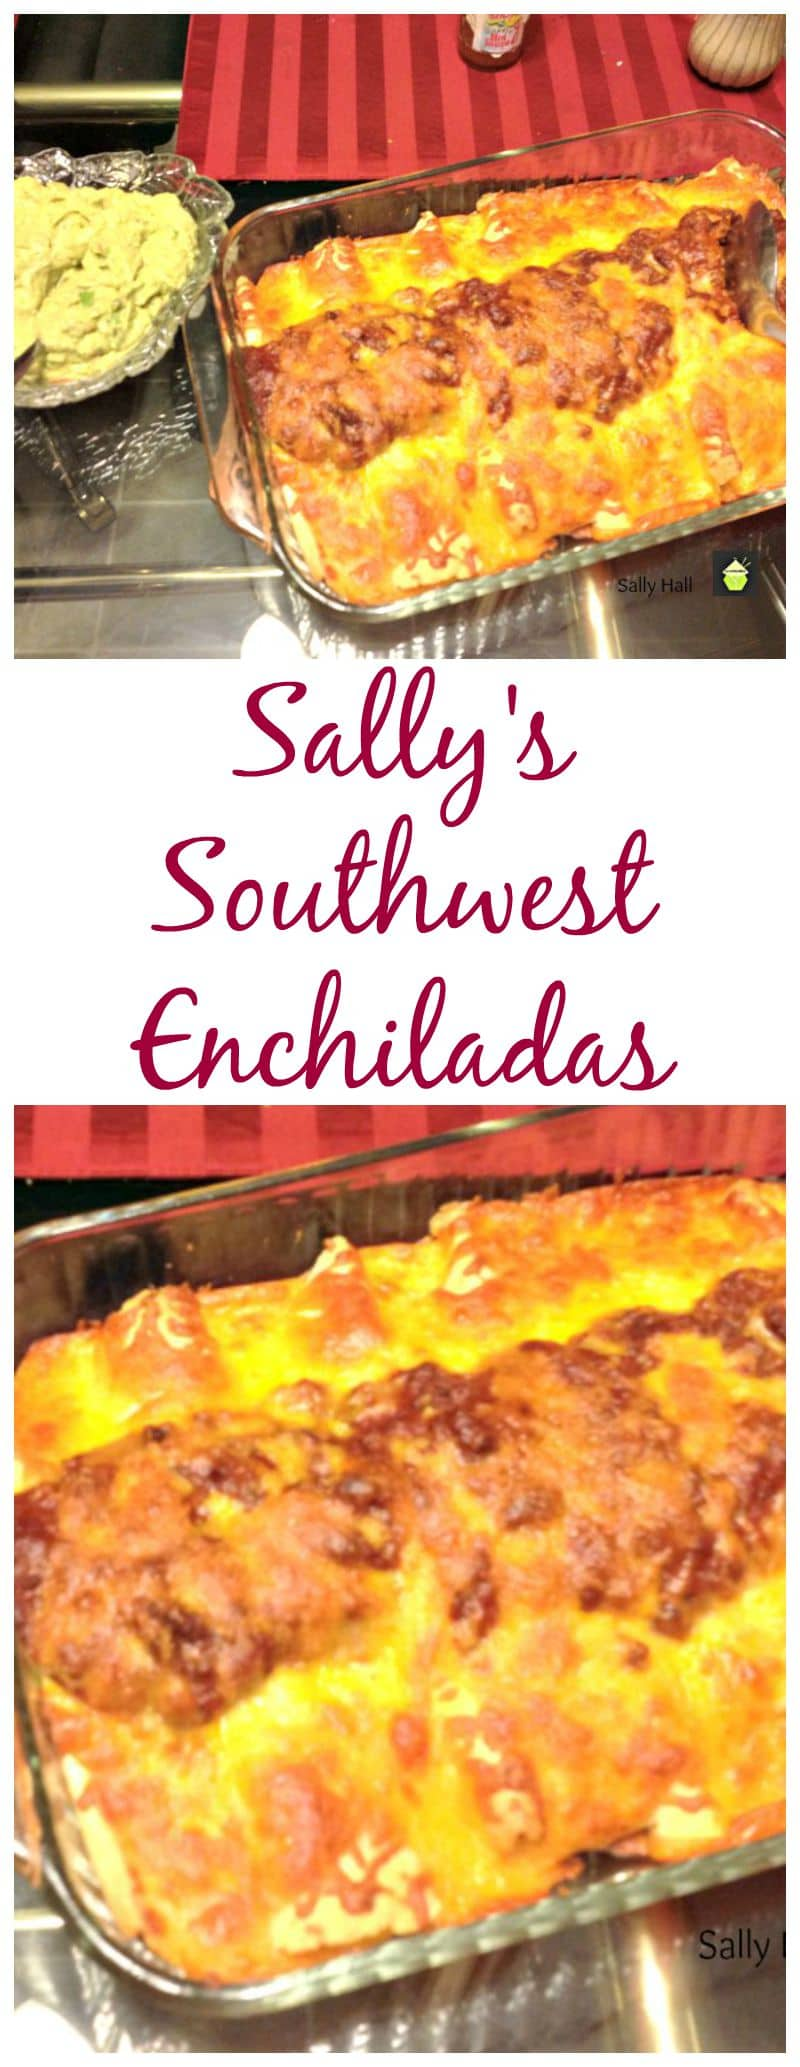 Southwest Enchiladas - Dinner in under 30 minutes!